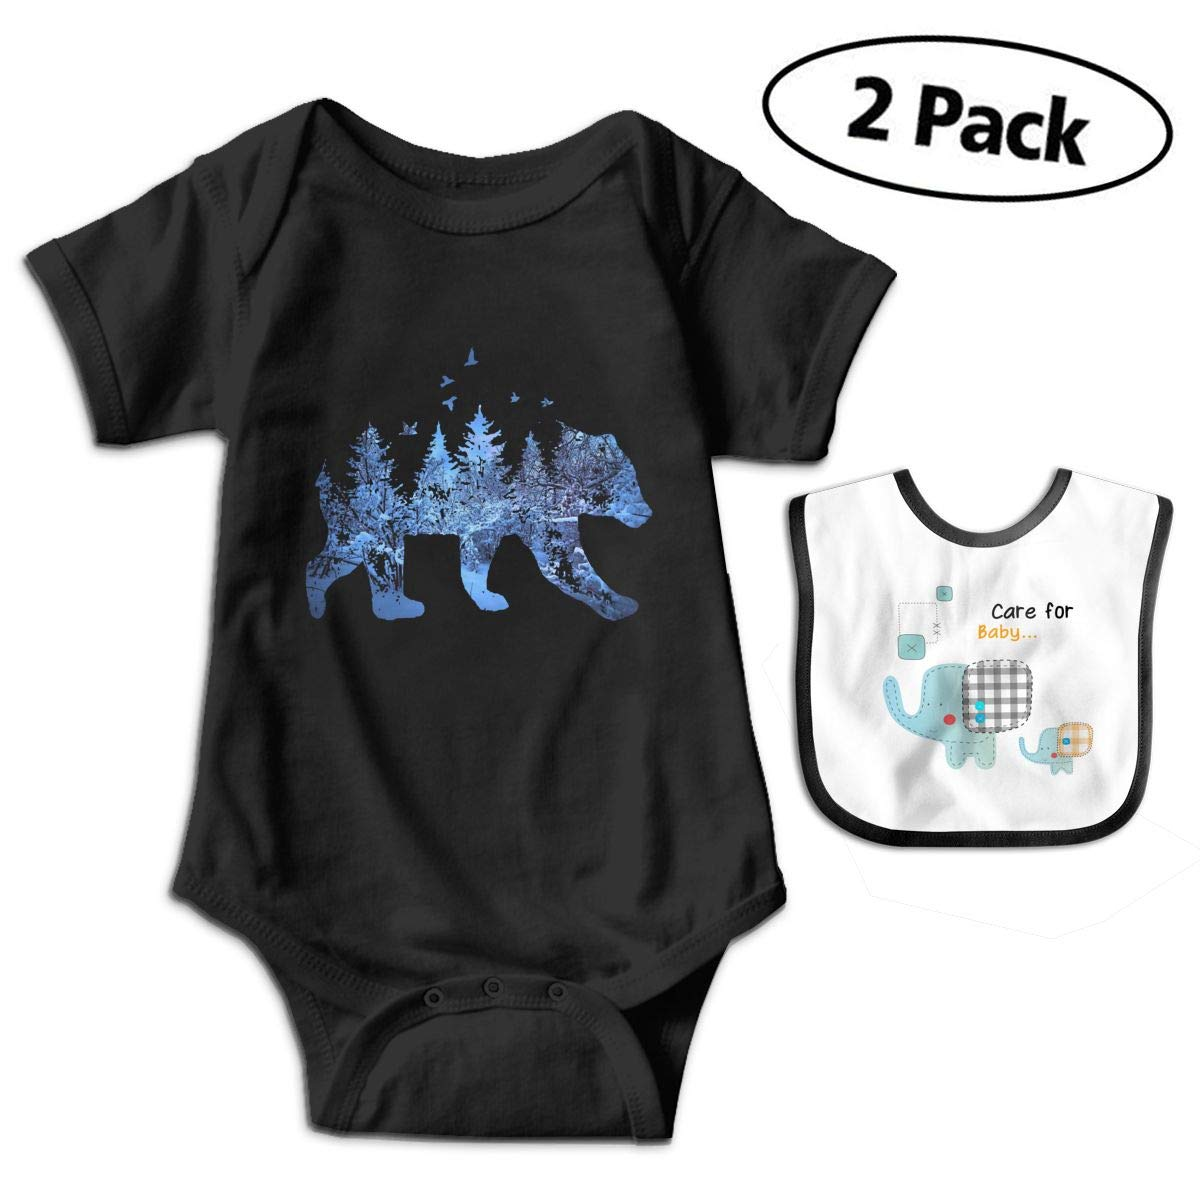 Psychedelic Forest Bear Birds Infant Baby Boys Girls Short Sleeve Romper Bodysuit Outfit Clothes